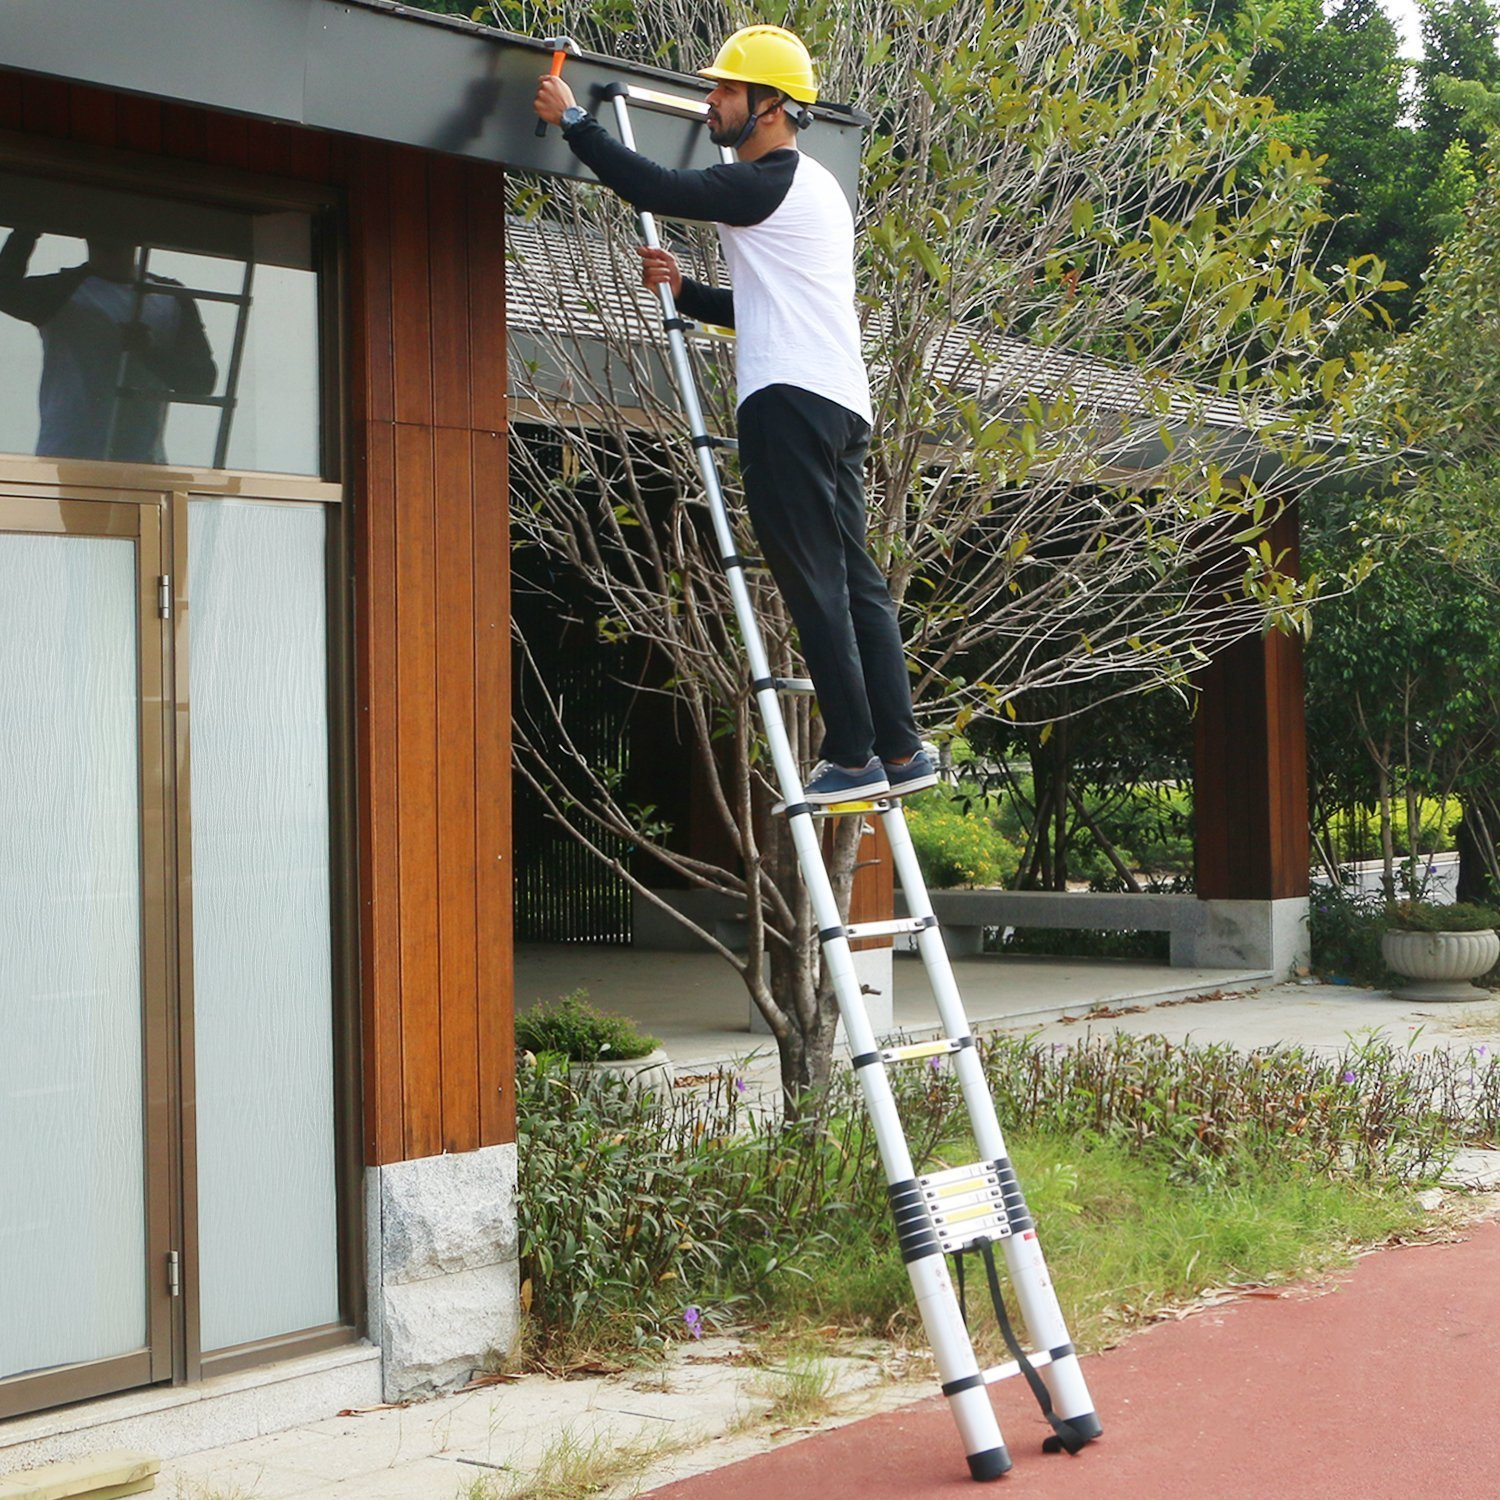 WolfWise 12.5 FT Telescoping Ladder Aluminum Telescopic Extension Tall Multi Purpose by WolfWise (Image #6)